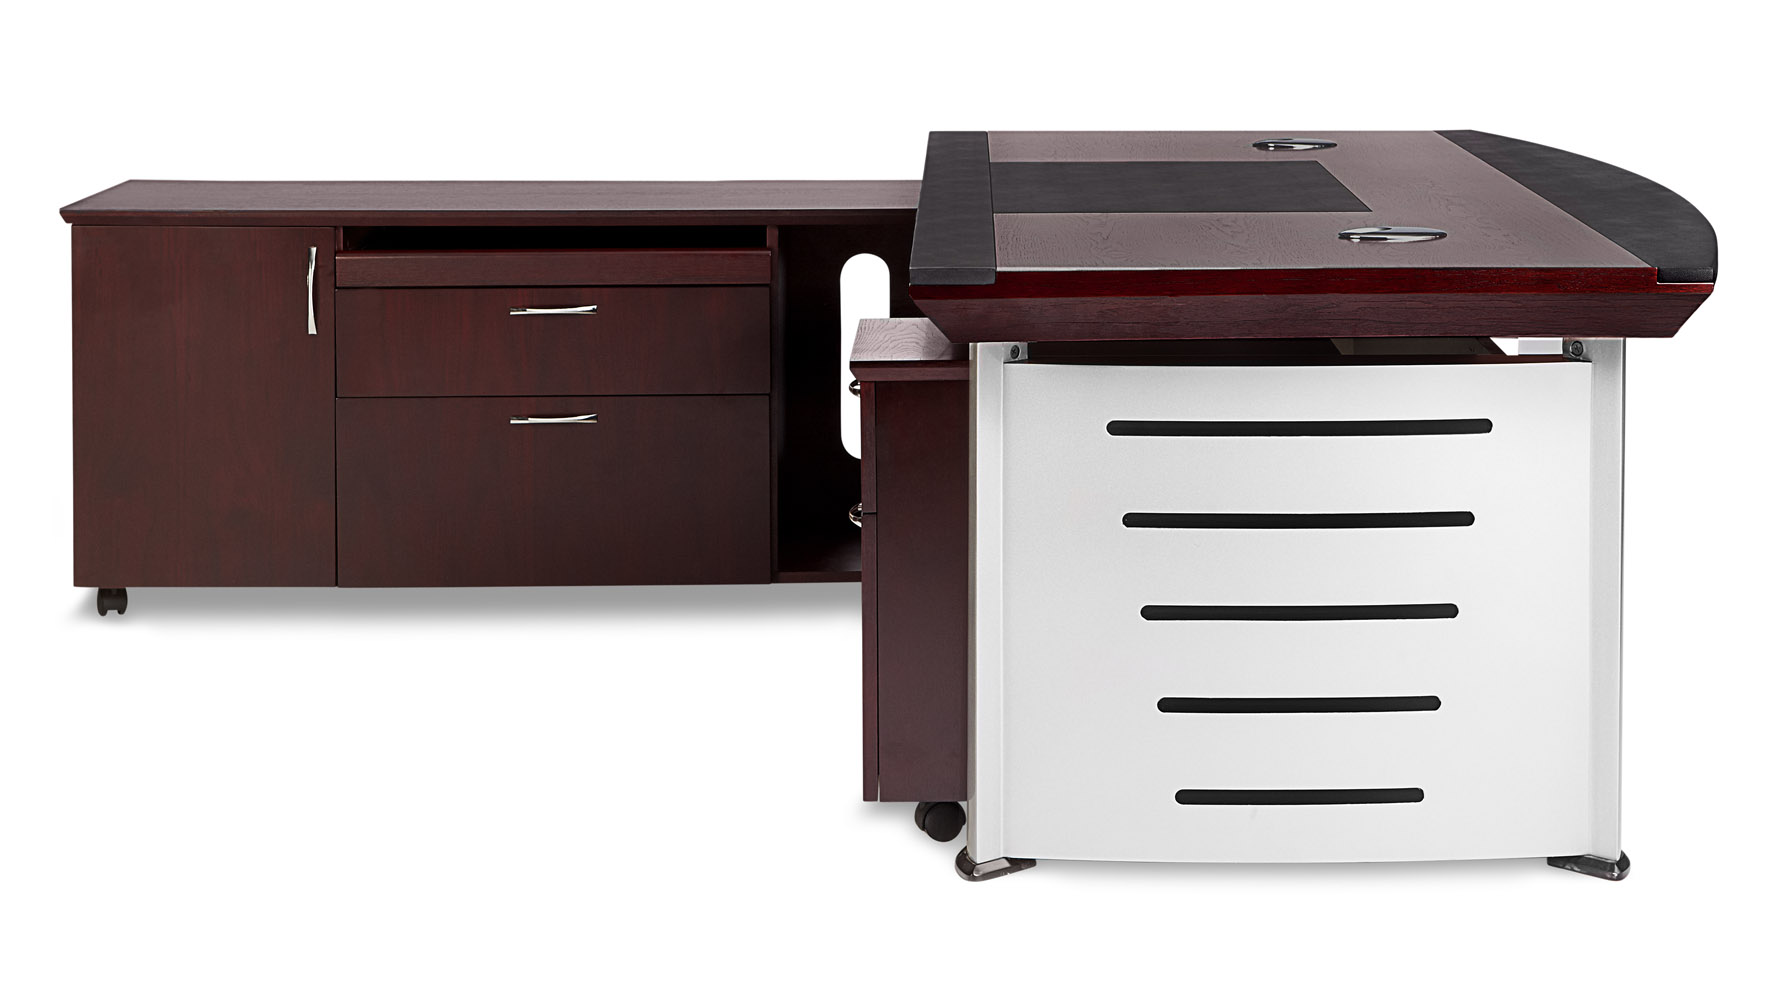 white vertical small fridge furniture under wood lateral with desk cabinet file lock filing nightstand